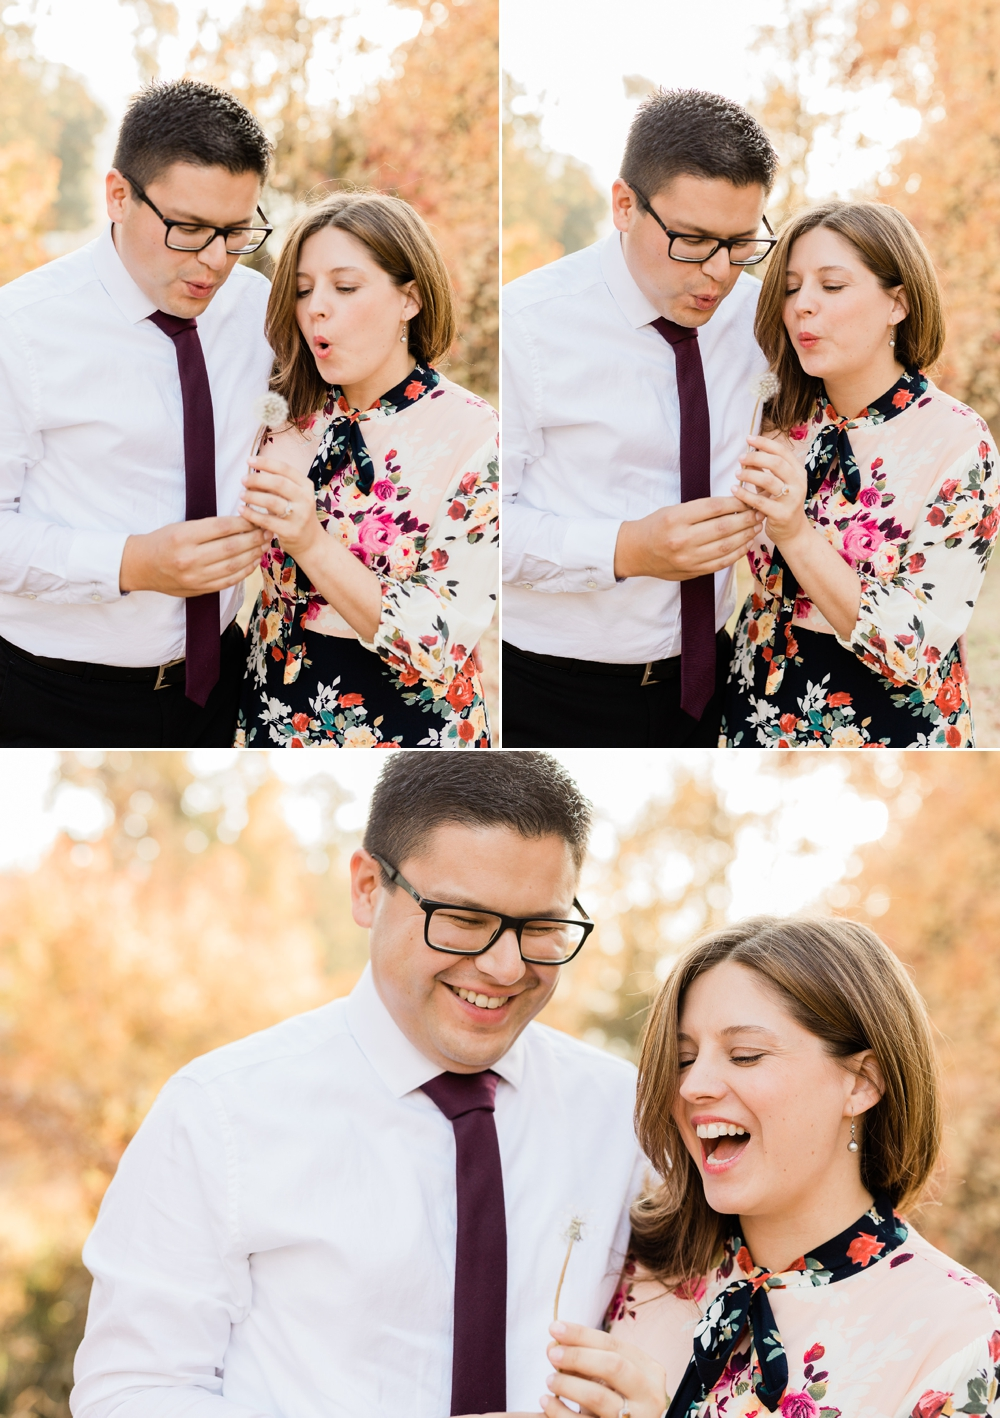 hart park bakersfield engagement session, blowing wishes, chocolate diamond ring